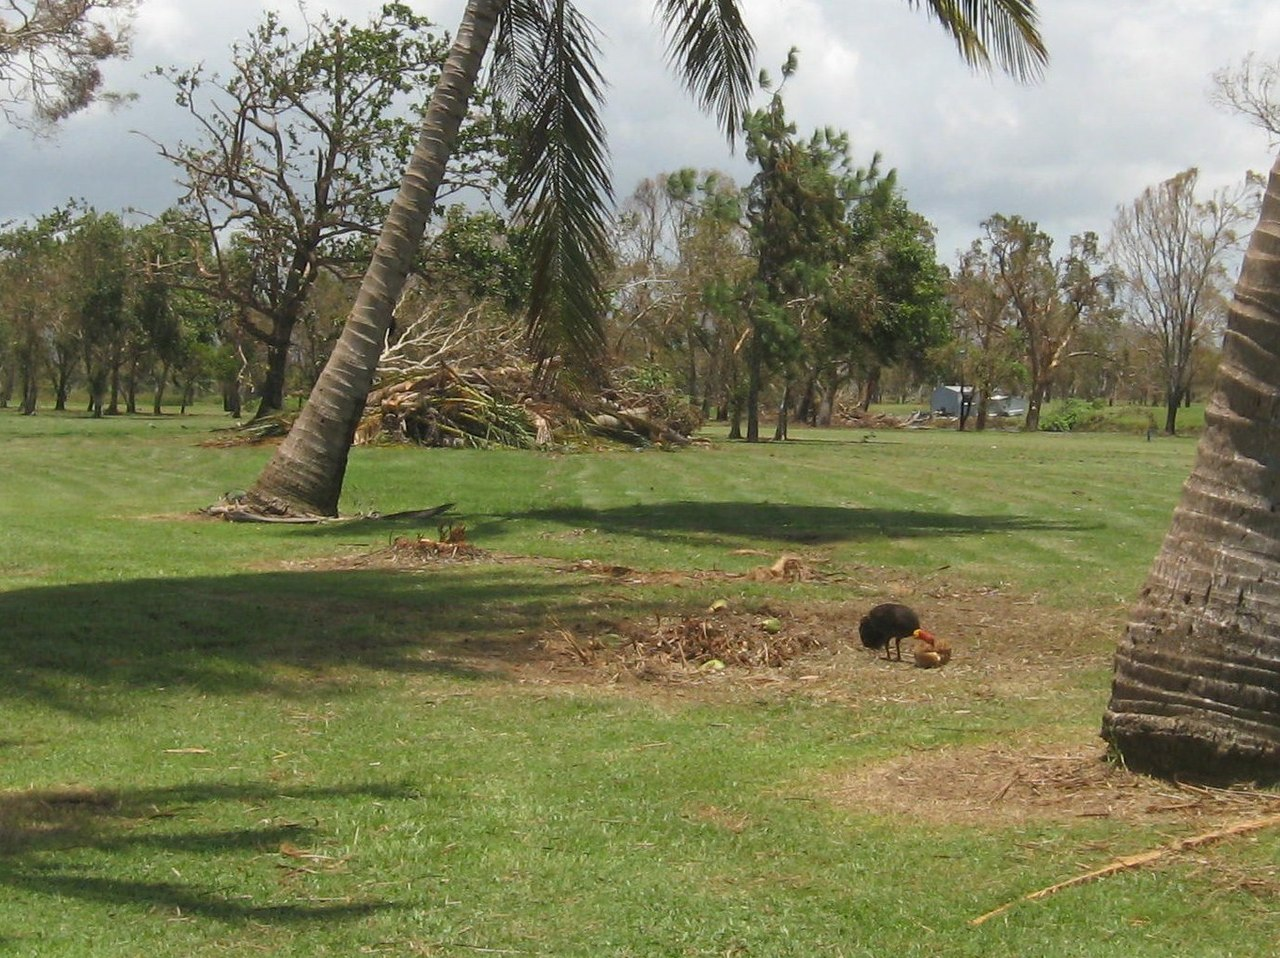 File:Australian Brush Turkey (Alectura lathami) having a feed of coconut. Feb 2011 - panoramio.jpg